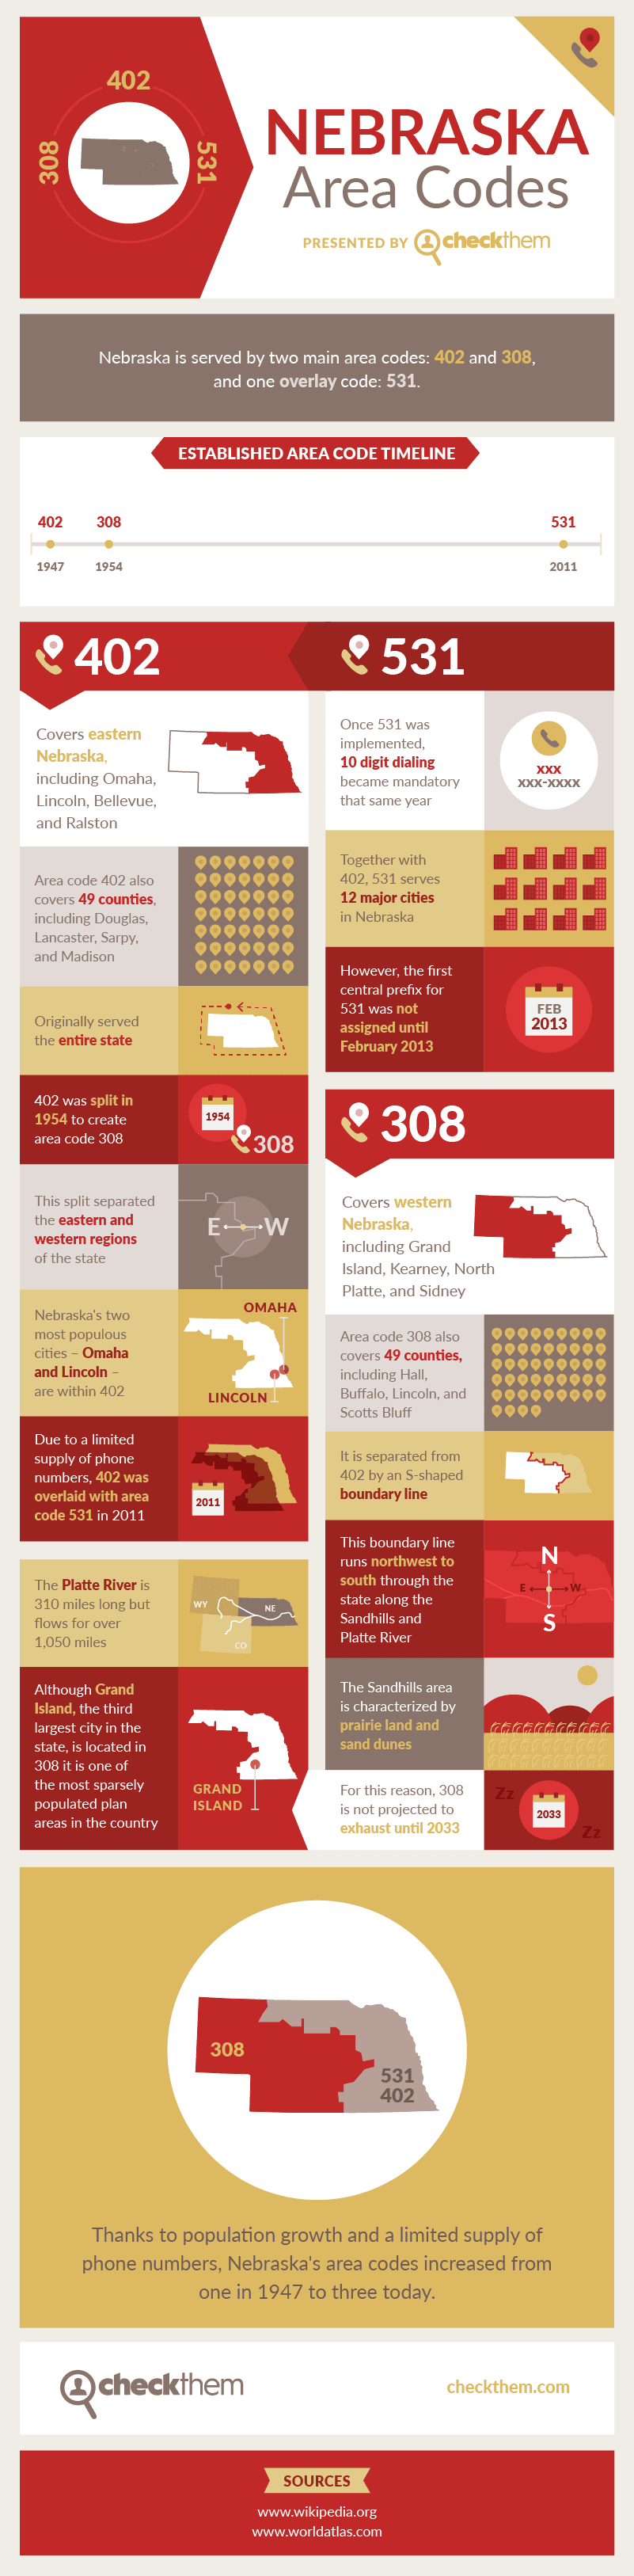 Nebraska Area Codes Infographic Visualistan - Area code 531